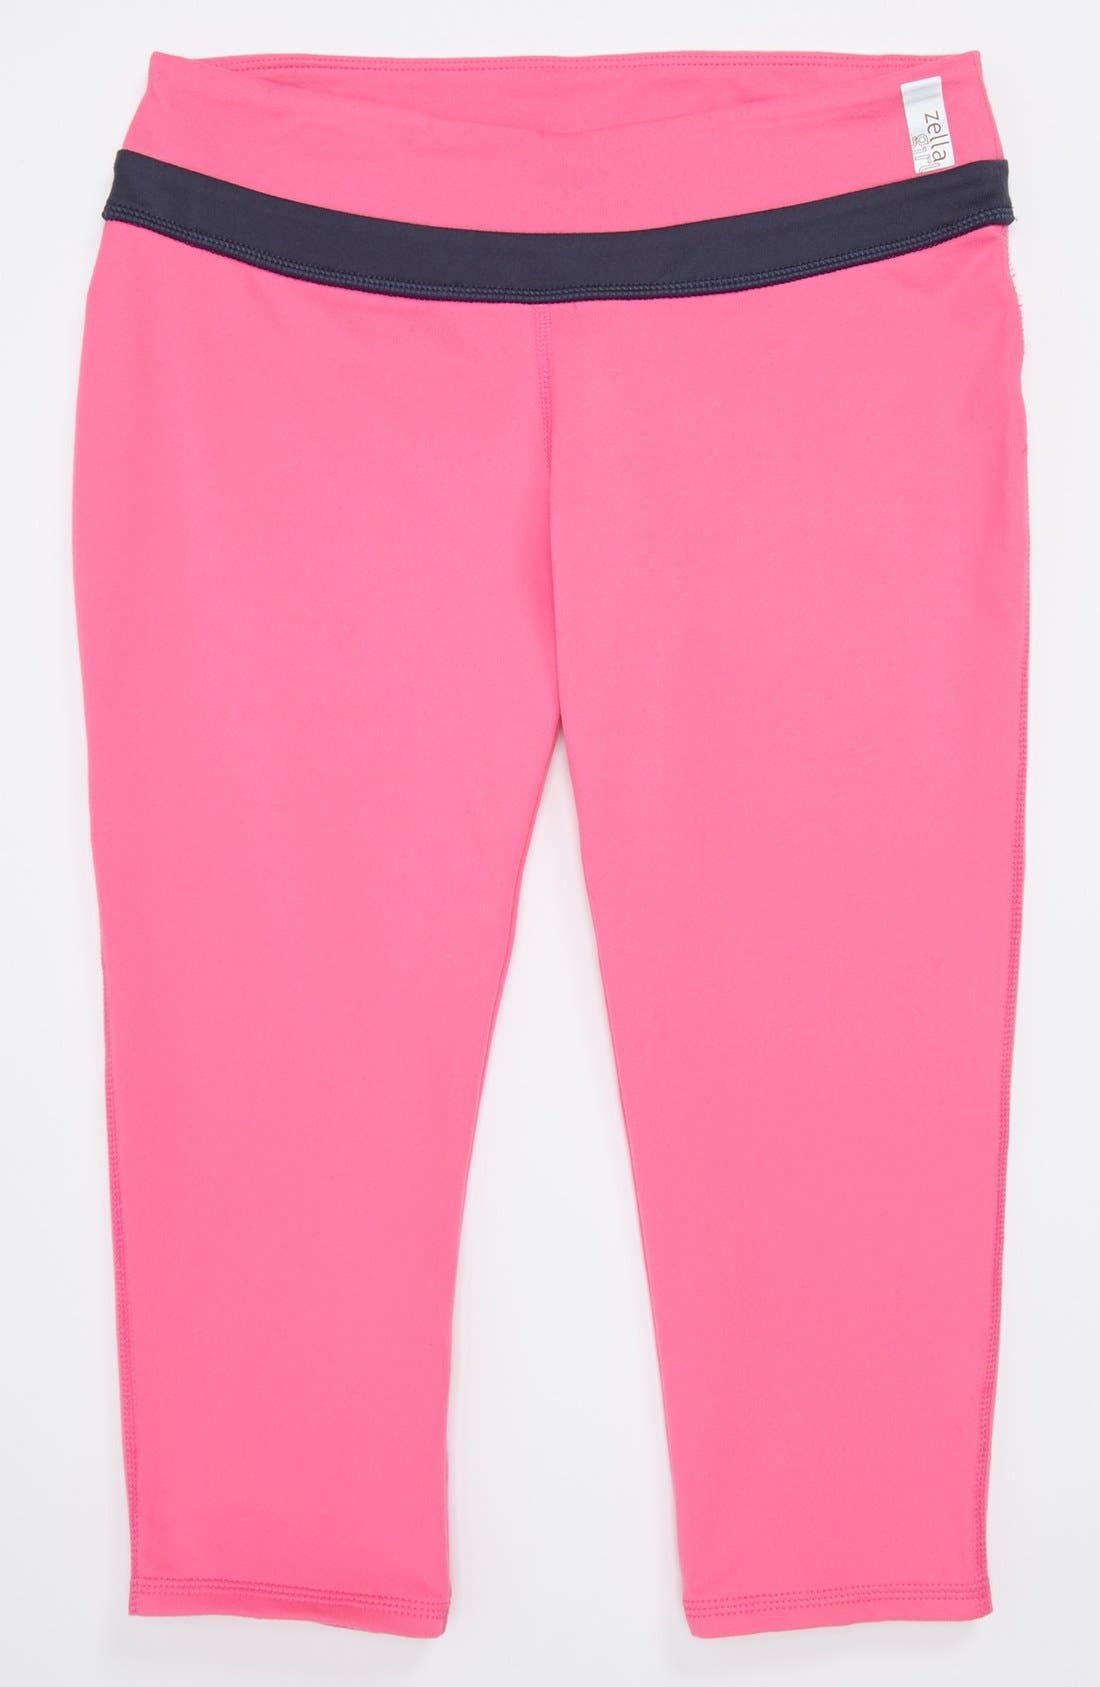 Alternate Image 1 Selected - Zella Girl 'Trainer' Capri Pants (Little Girls & Big Girls)